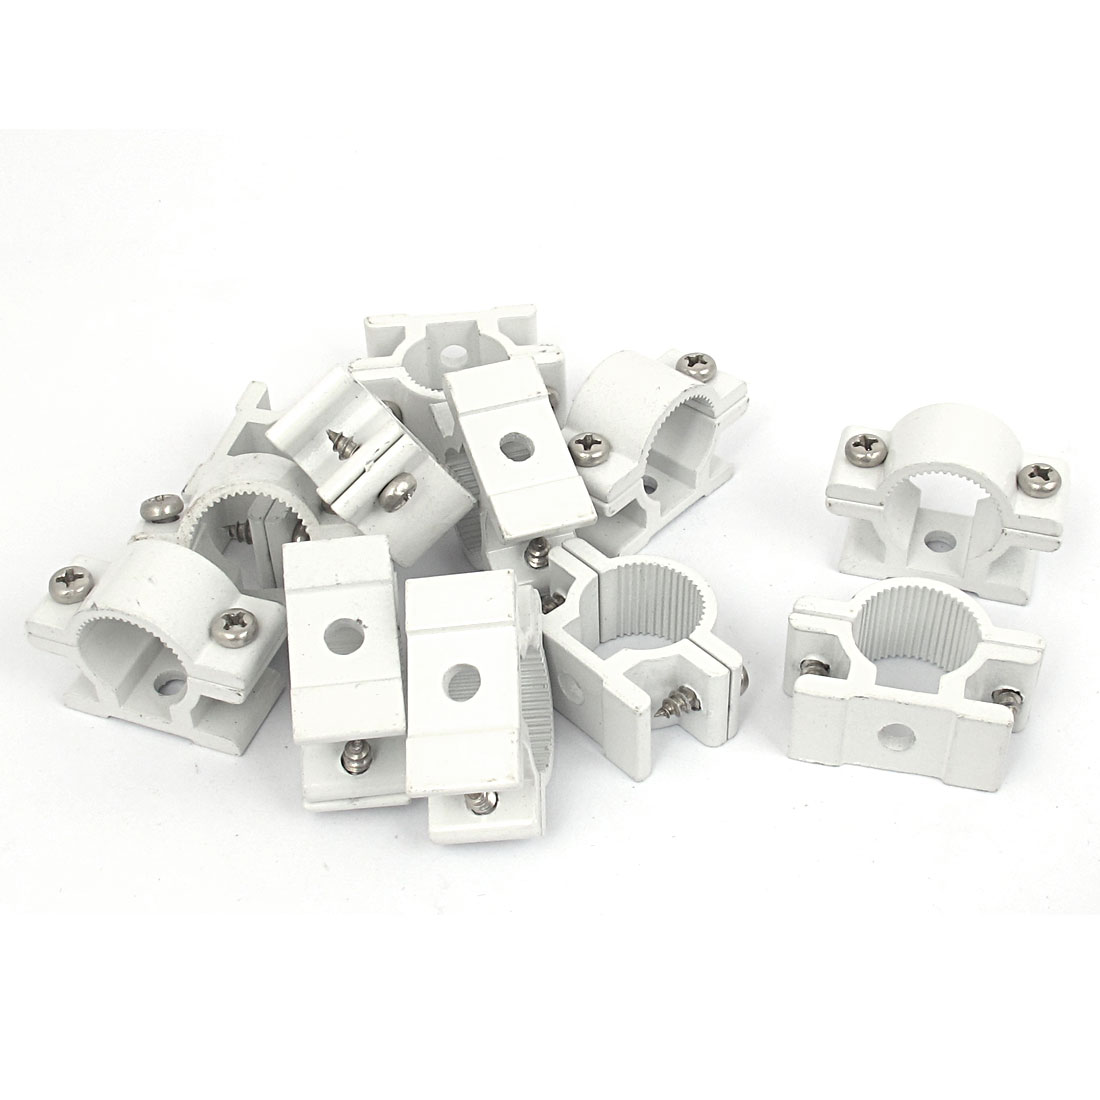 18mm Dia Wall Mounted Aluminium Alloy Pipe Clip Clamp Fastener 12pcs